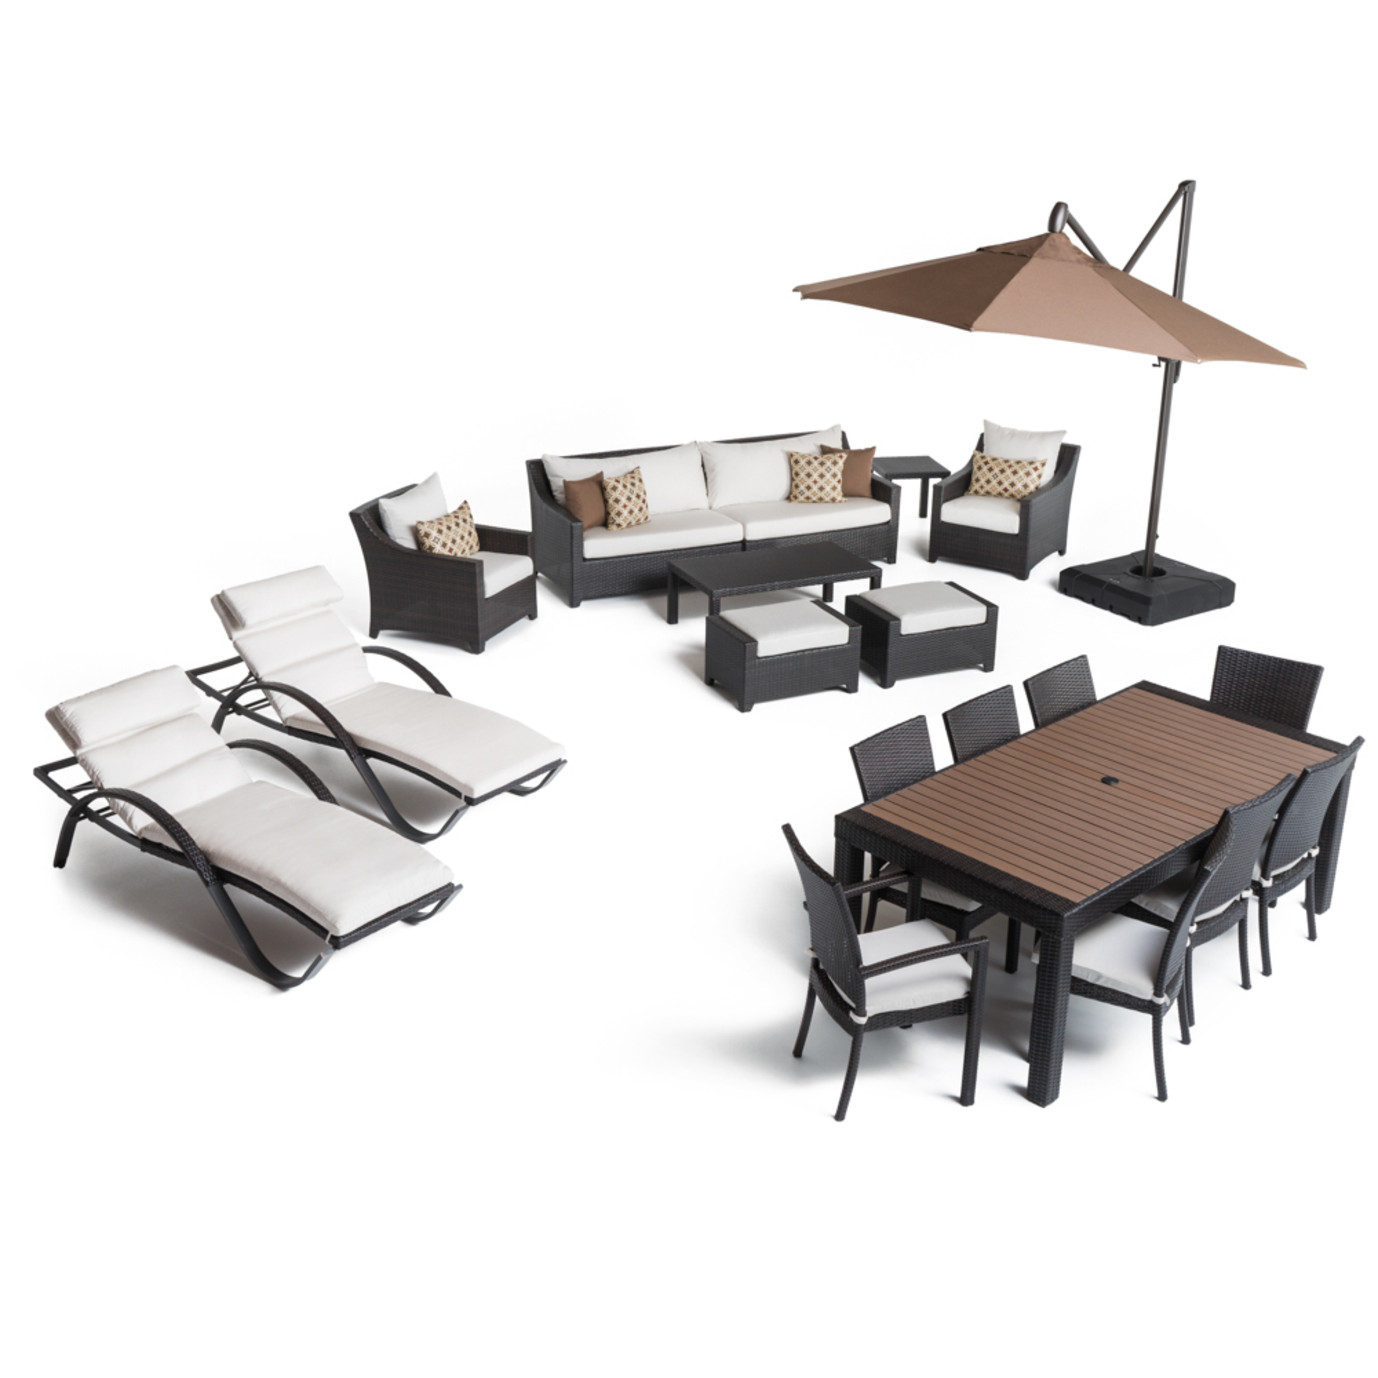 Deco™ 20pc Outdoor Estate Set - Moroccan Cream